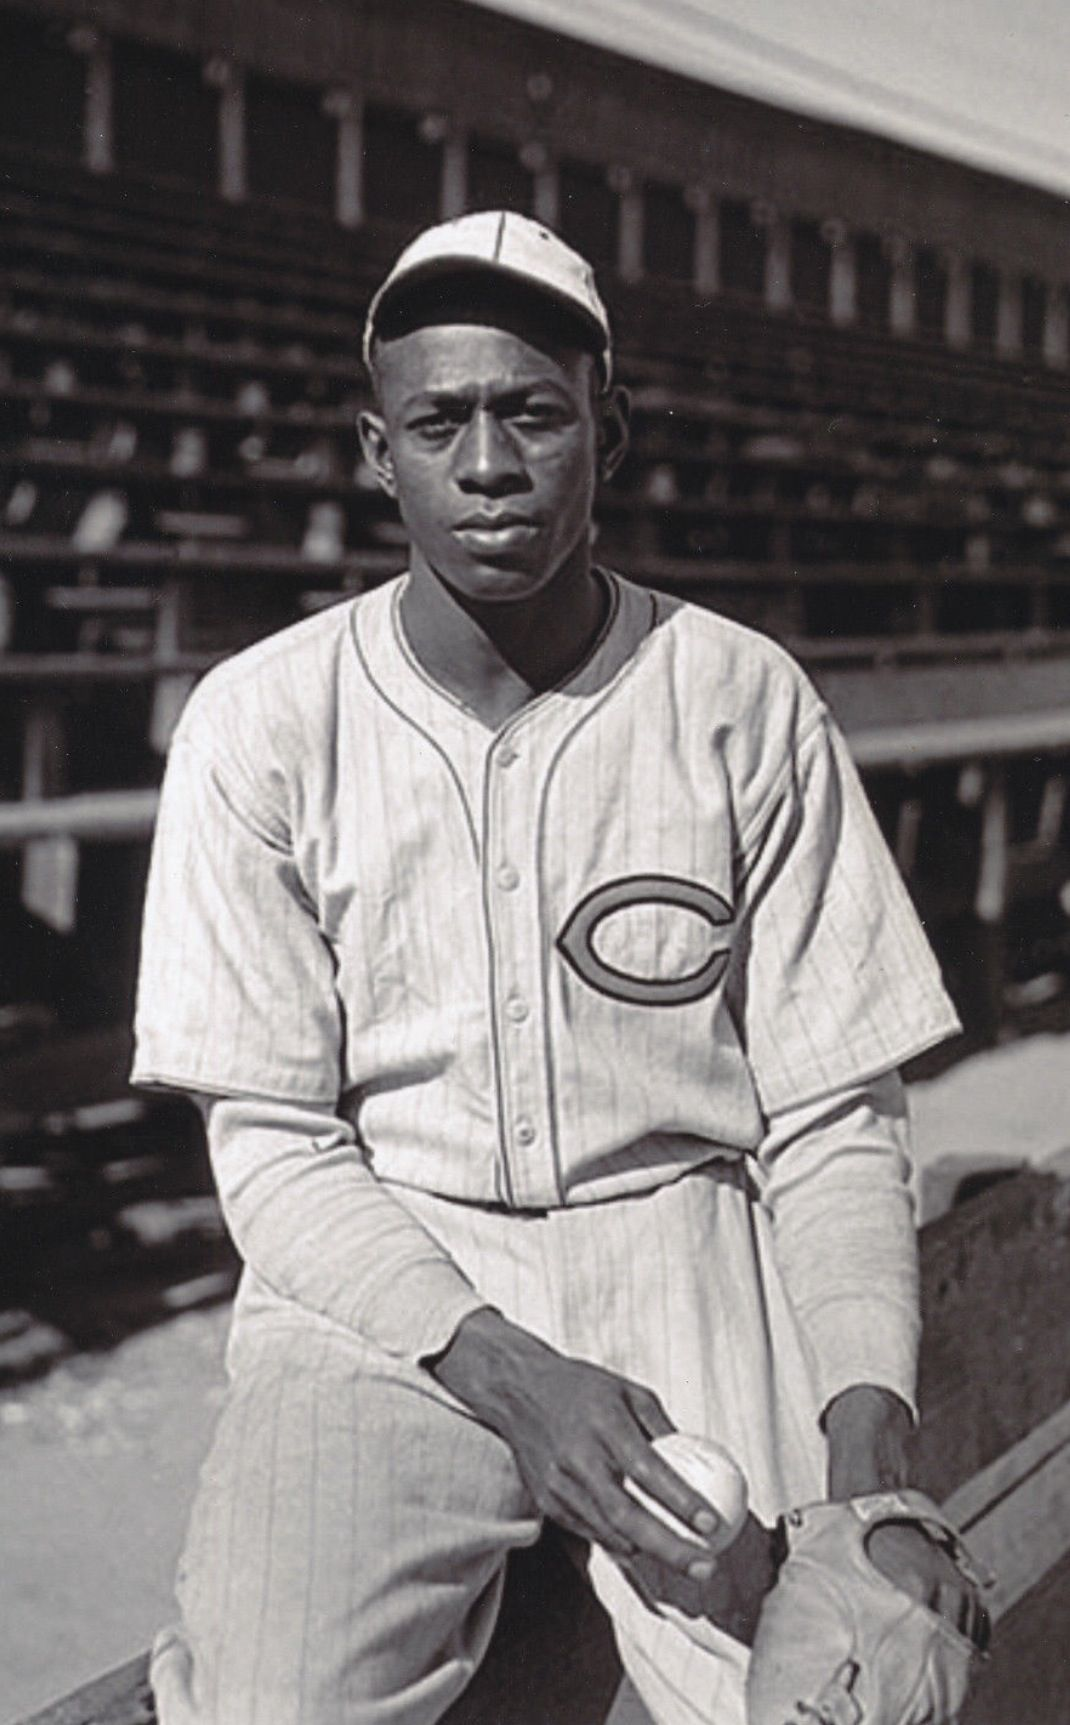 6687a0be3 Satchel Paige - Cleveland Cubs Baseball Star